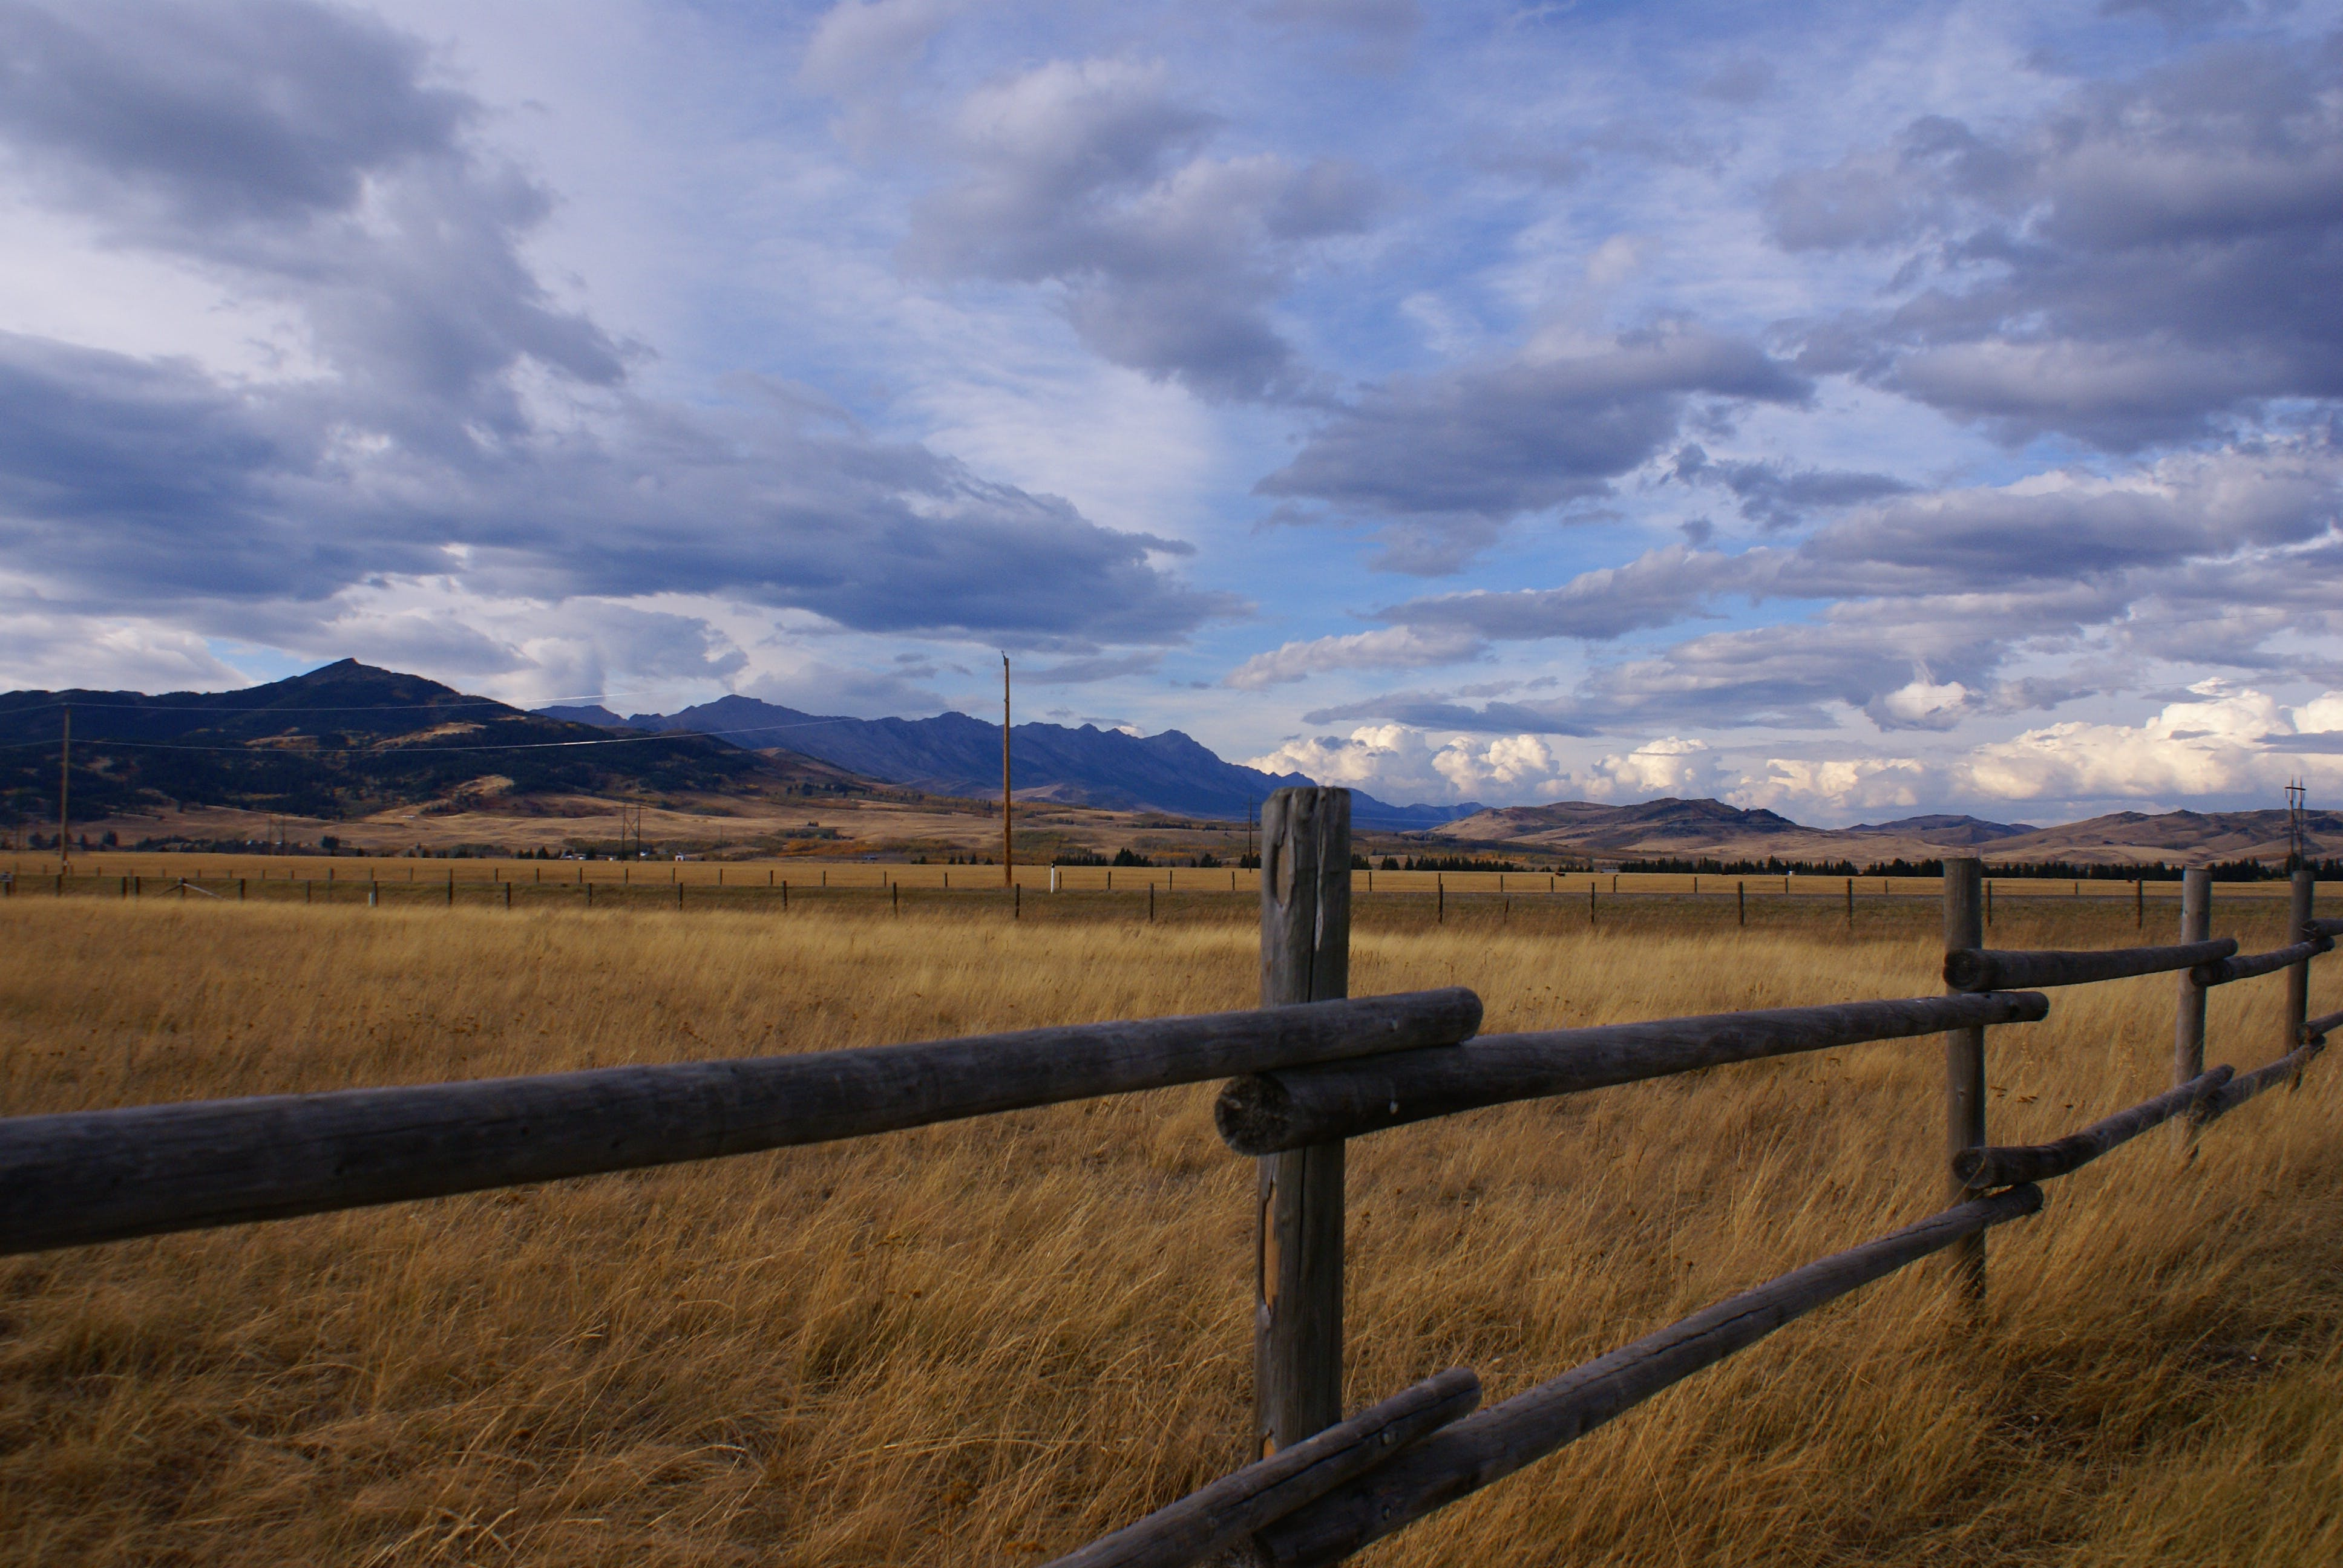 Free stock photo of clouds, Fence line, grass field, hills